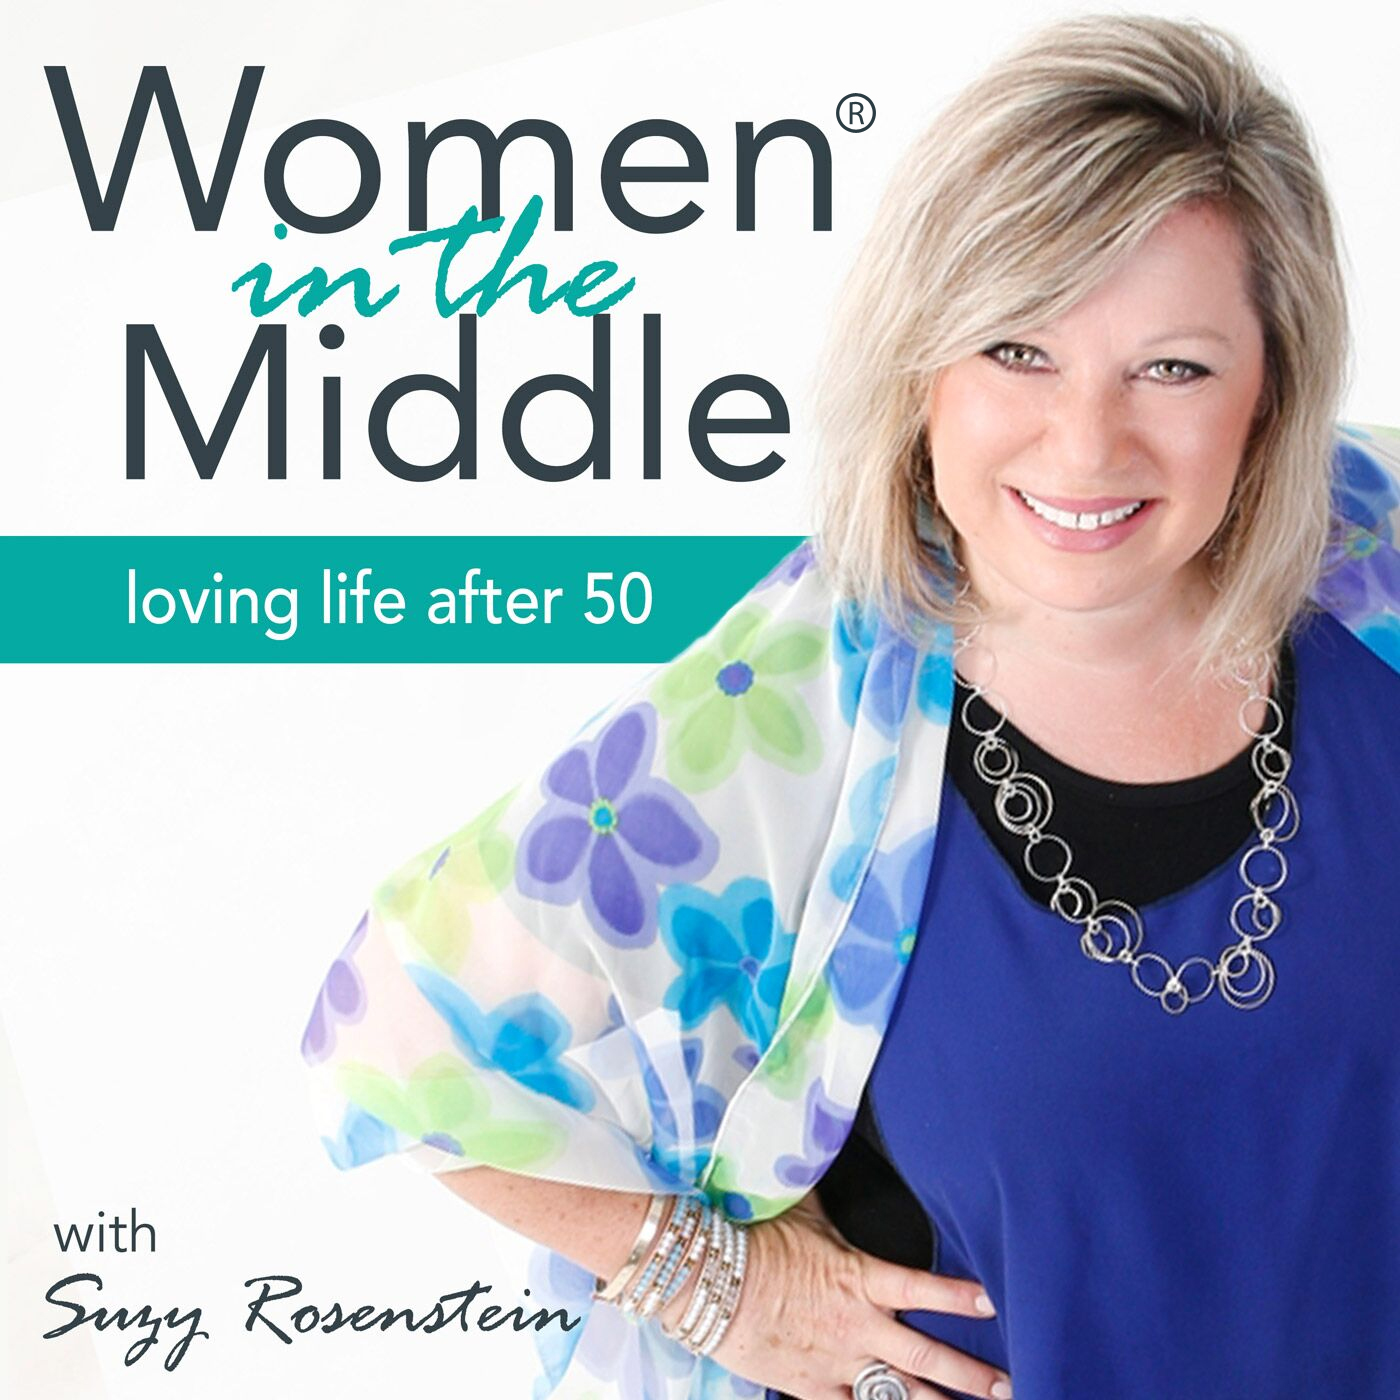 Women in the Middle®: Loving Life After 50 - Midlife Podcast show art